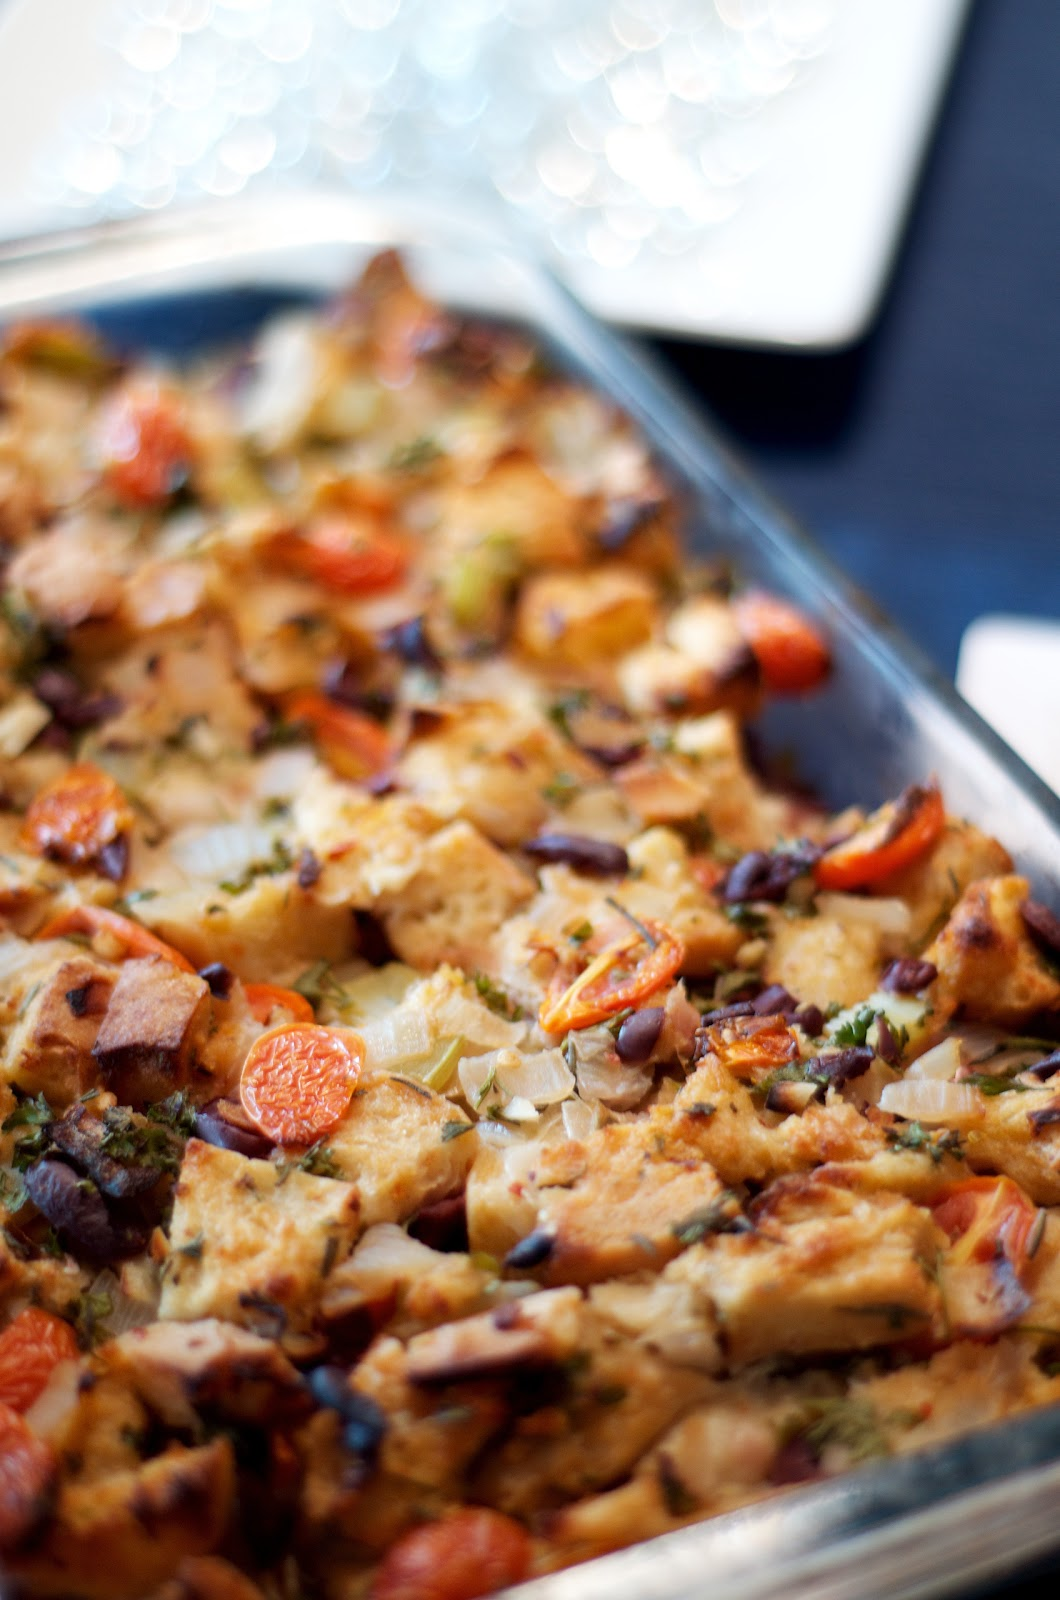 The Ginger Cook: Tomato-Olive Stuffing